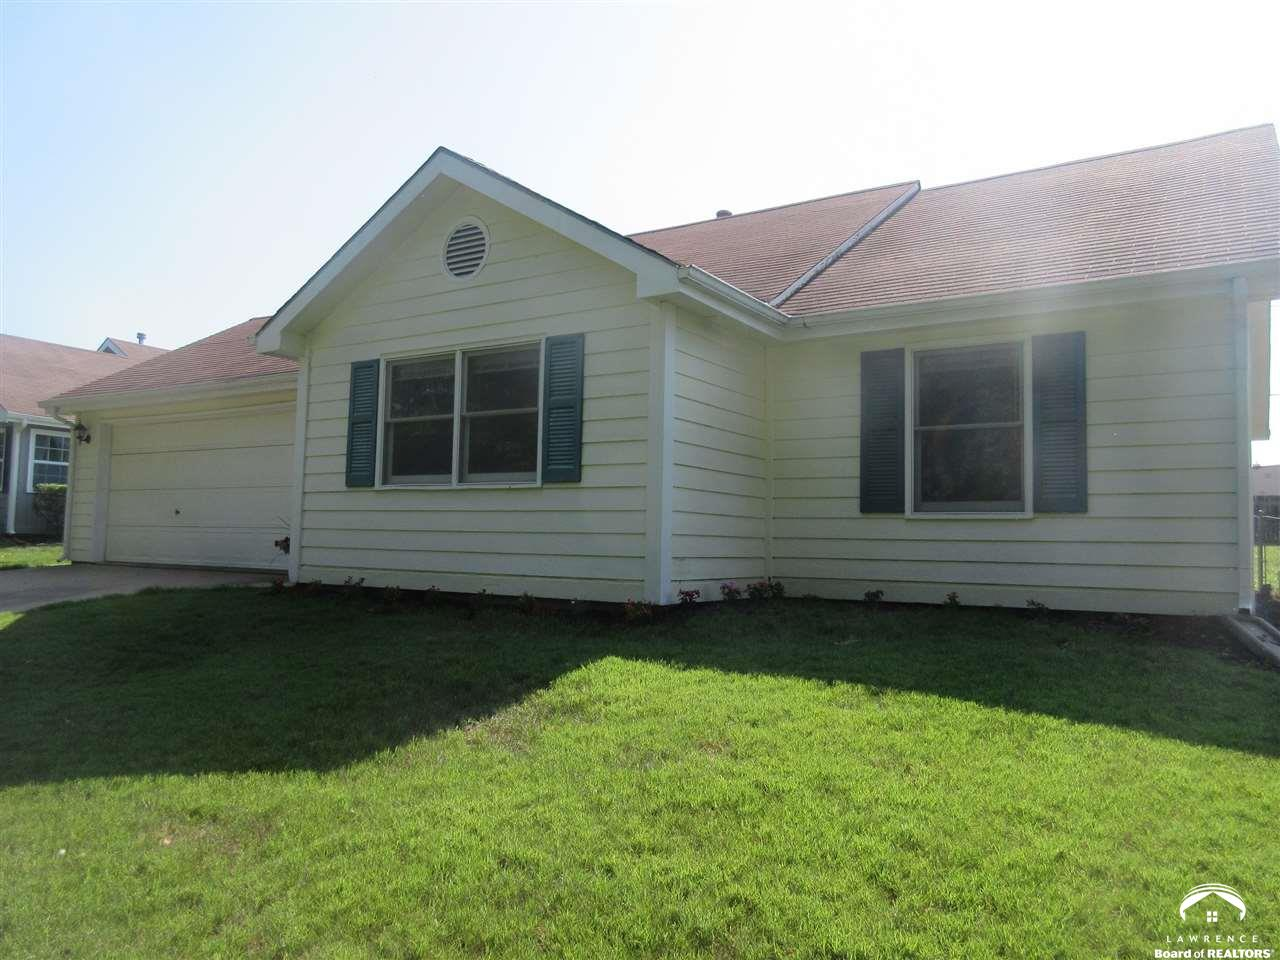 2705 Trail Dust Ct., Lawrence, KS 66046